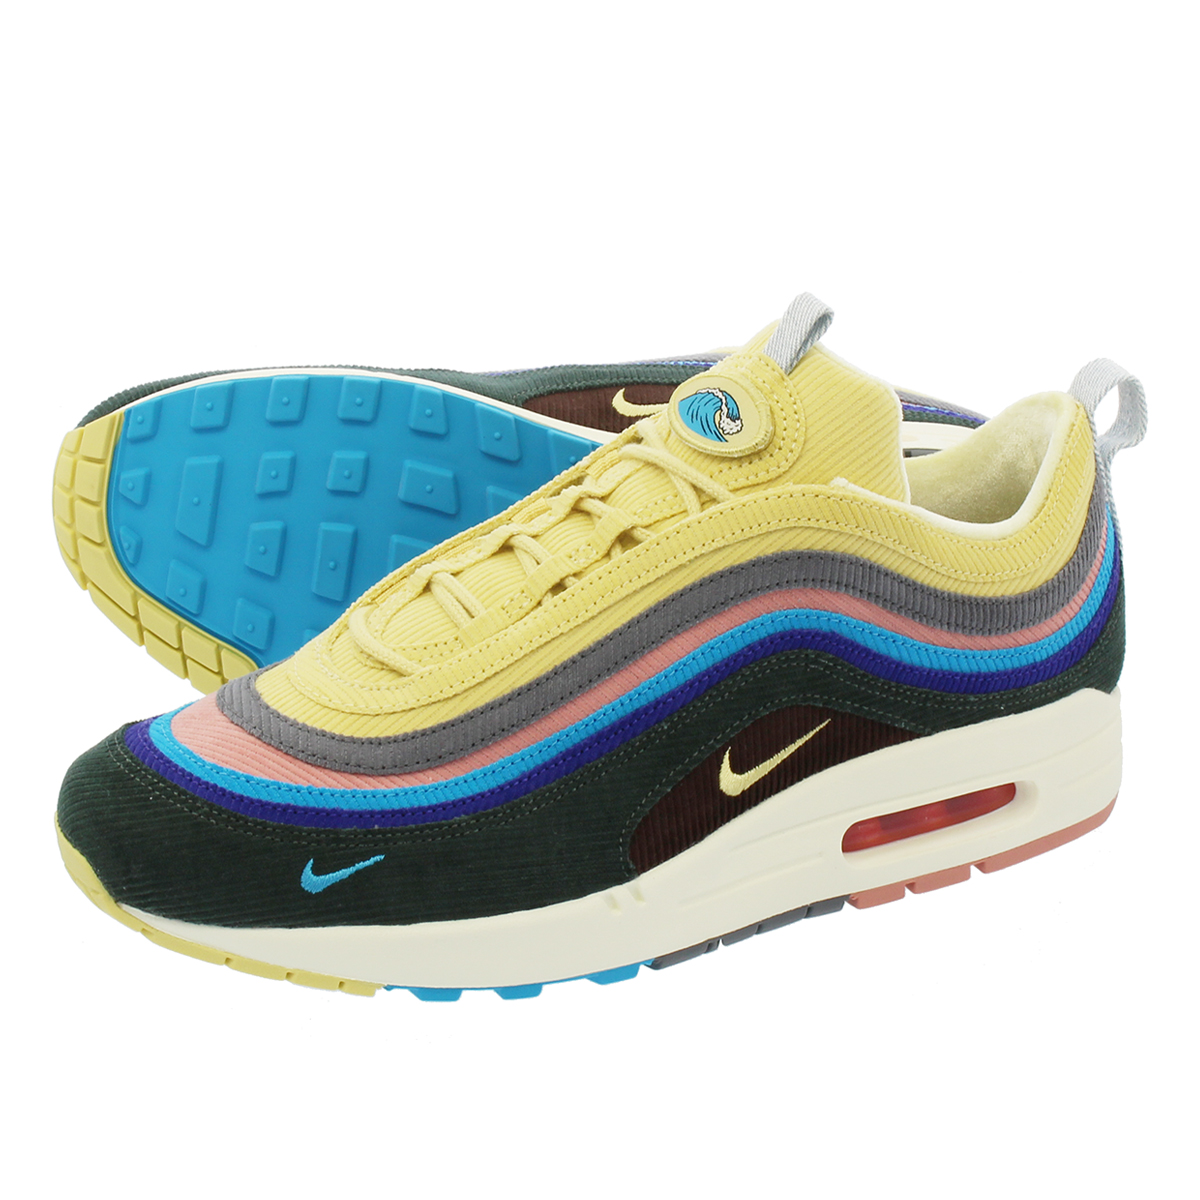 new product dddc3 722a8 NIKE AIR MAX 1/97 V.F. SW NIKE AIR MAX 1/97 V.F. Sean weather spoon LIGHT  BLUE FURY/LEMON WASH